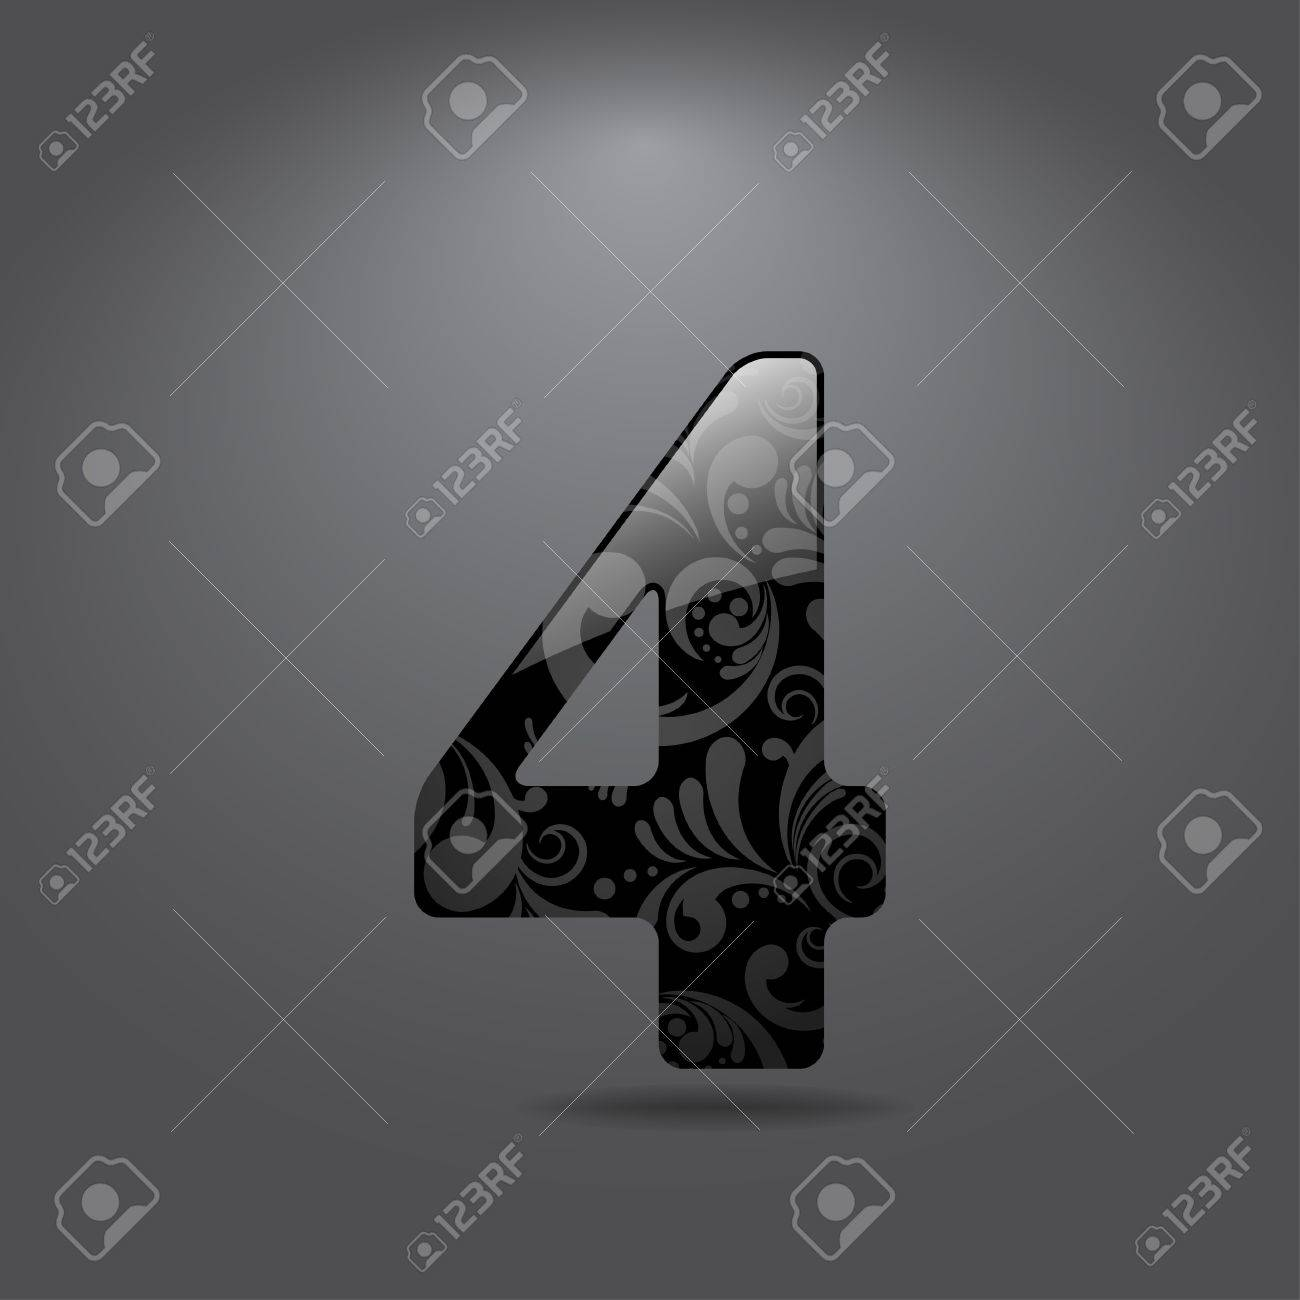 Glossy digit 4 - symbol with floral ornate Stock Vector - 14846756